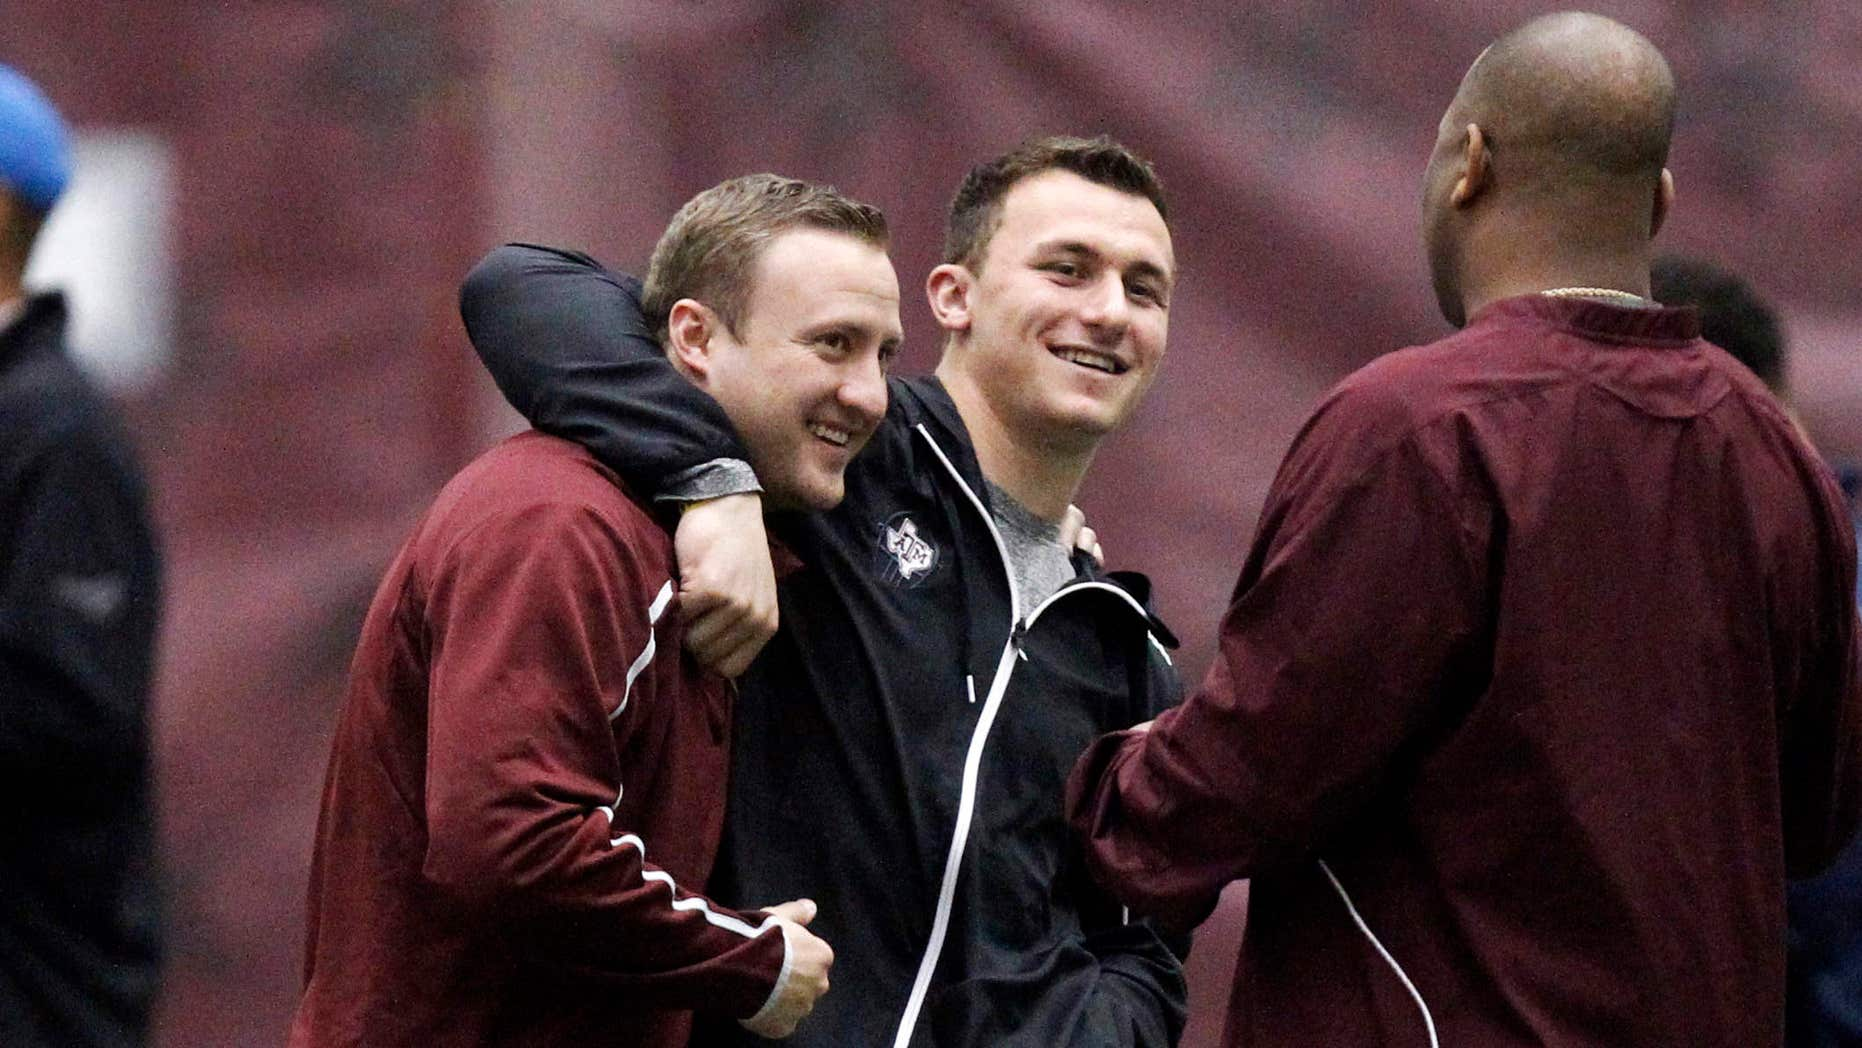 FILE - In this March 5, 2014, file photo, Texas A&M quarterback Johnny Manziel, middle, gives offensive coordinator Jake Spavital a hug during Texas A&M pro day in College Station, Texas.